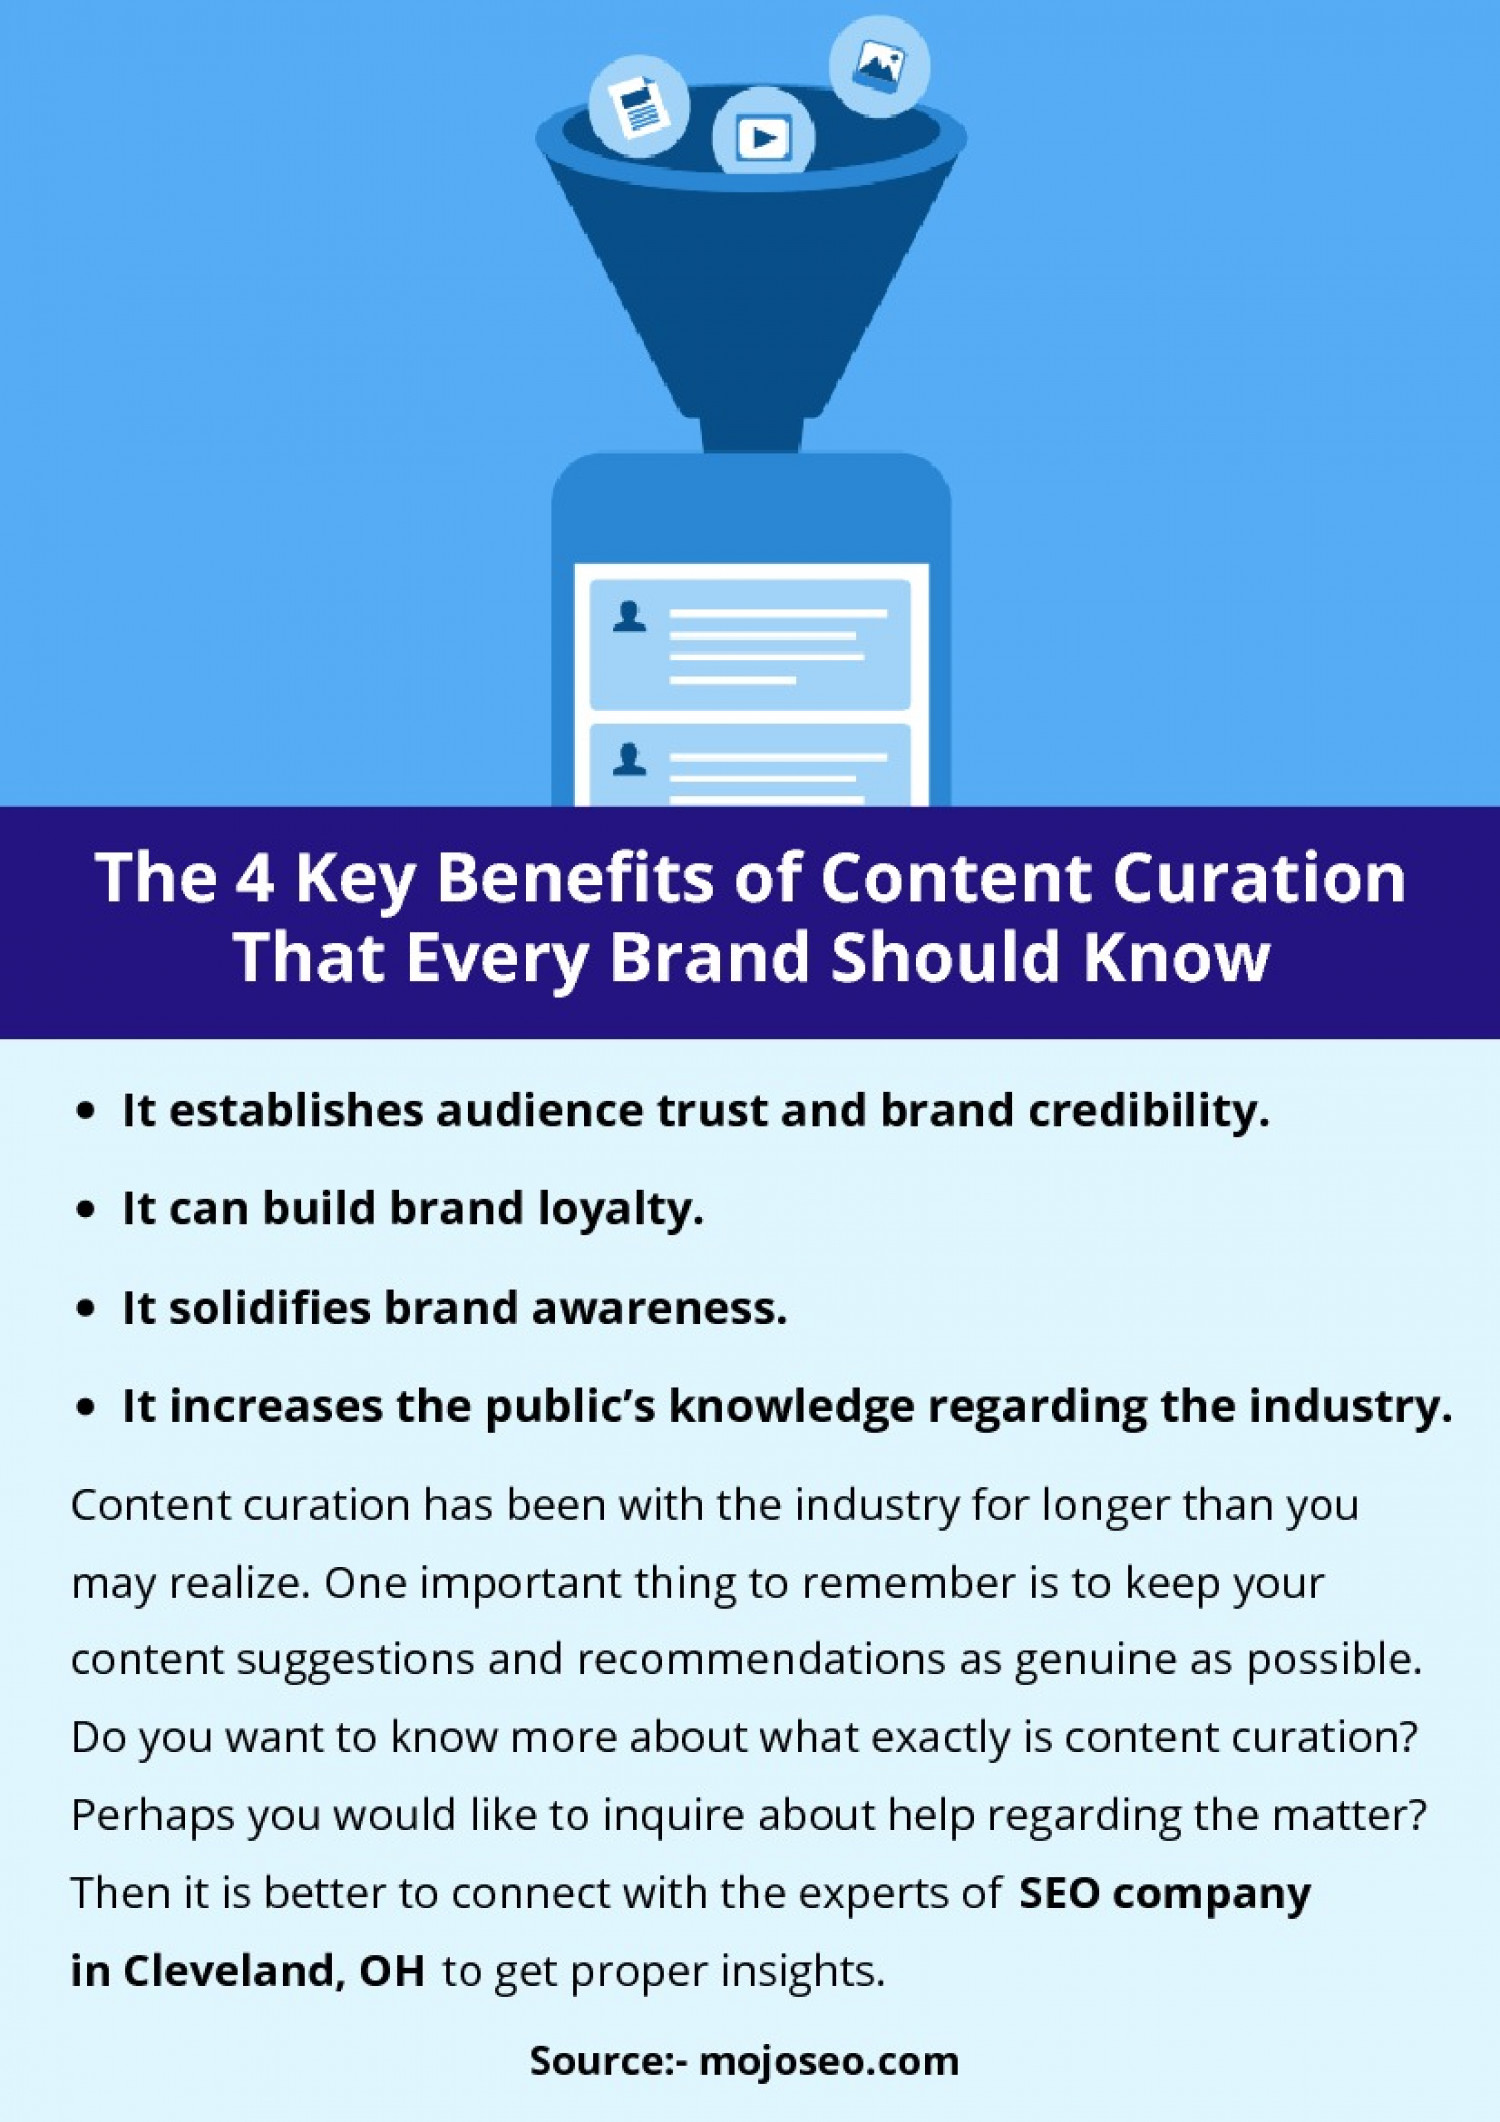 The 4 Key Benefits of Content Curation That Every Brand Should Know Infographic